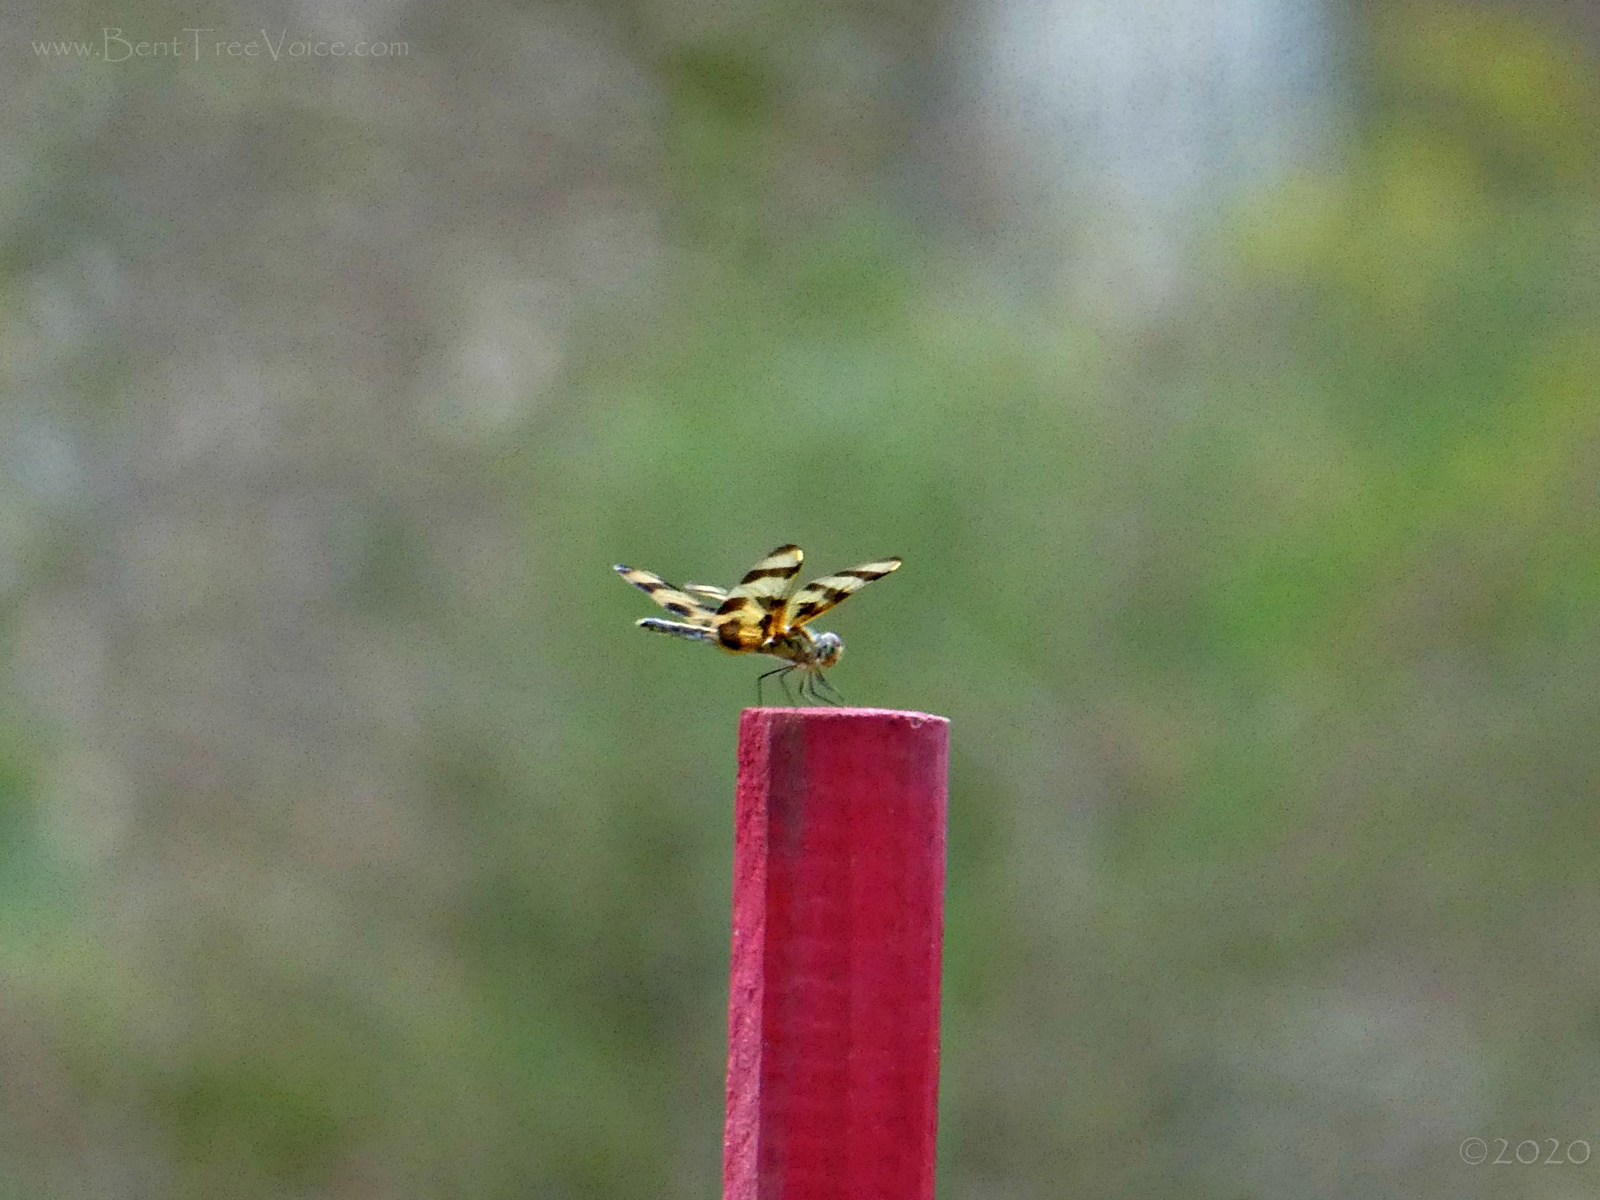 August 23, 2020 - Dragonfly on Hole 7